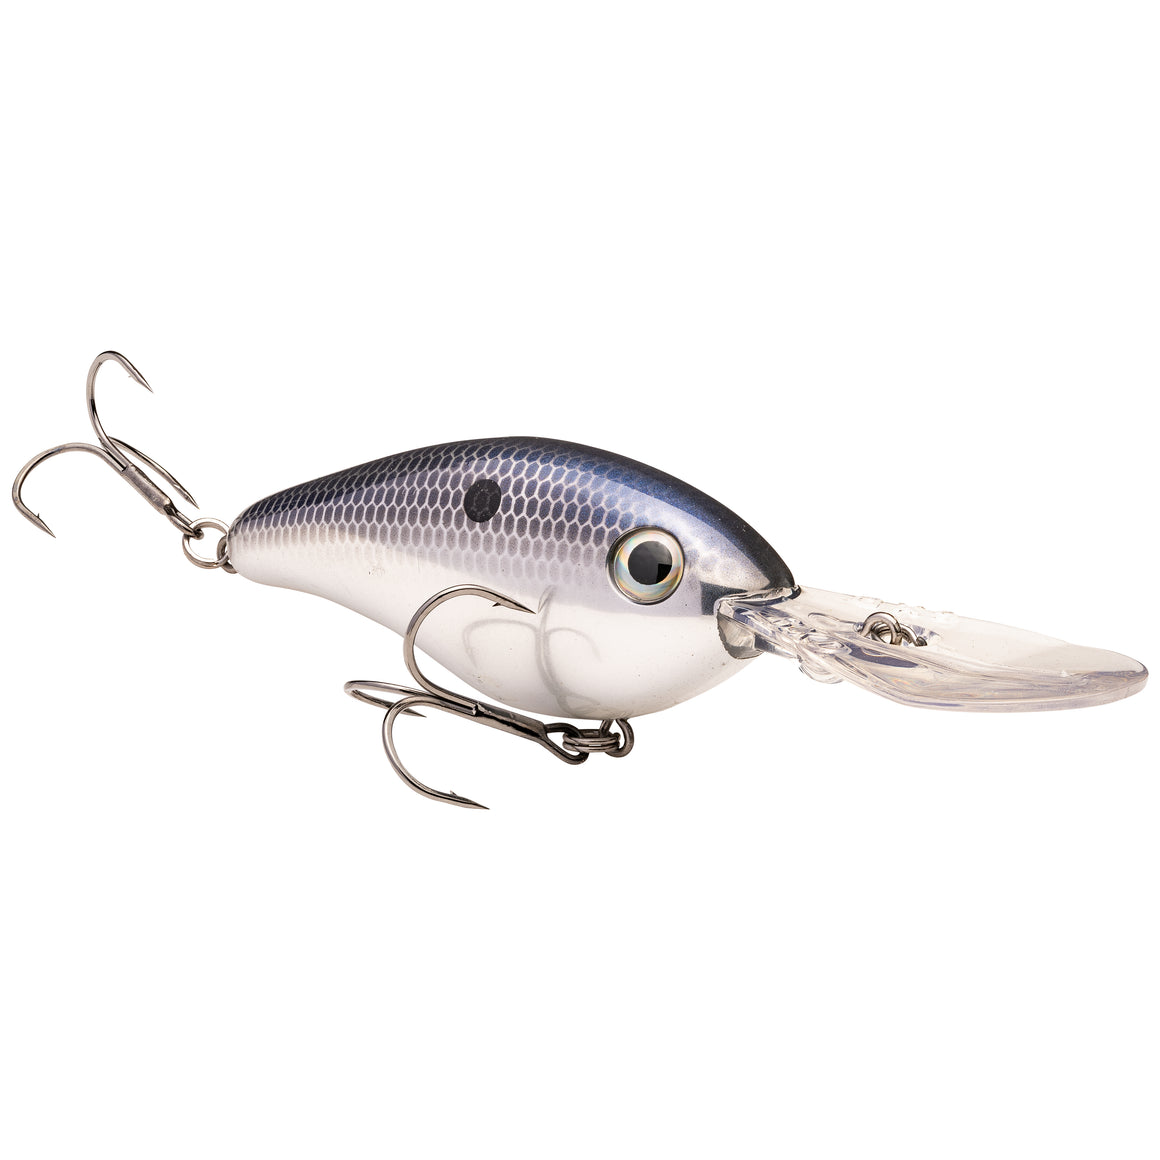 Strike King Pro Model 6XD Crankbait - Direct Fishing Sales